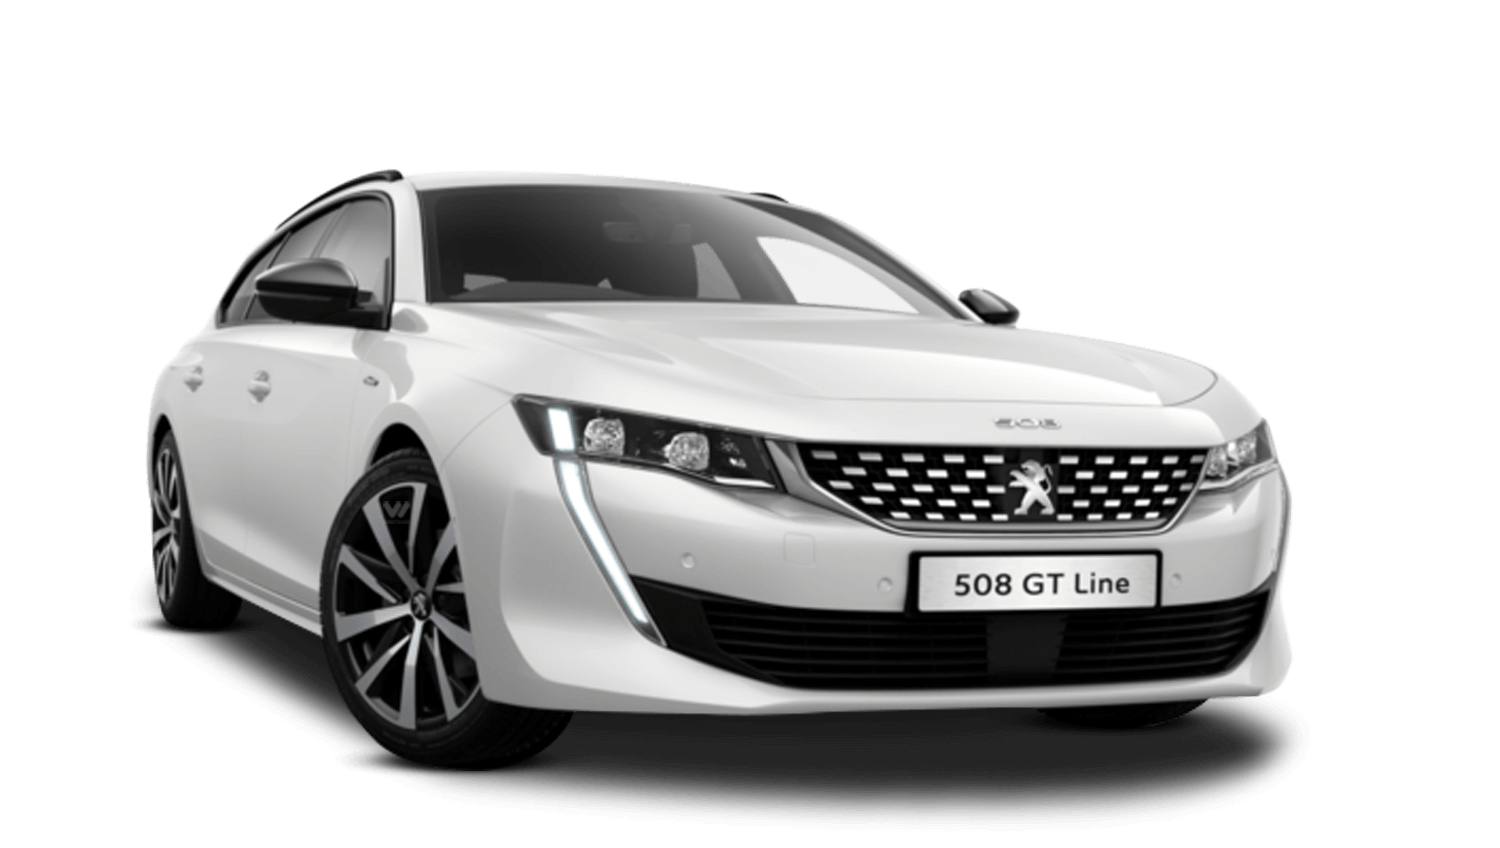 Pearlescent White All-New Peugeot 508 SW